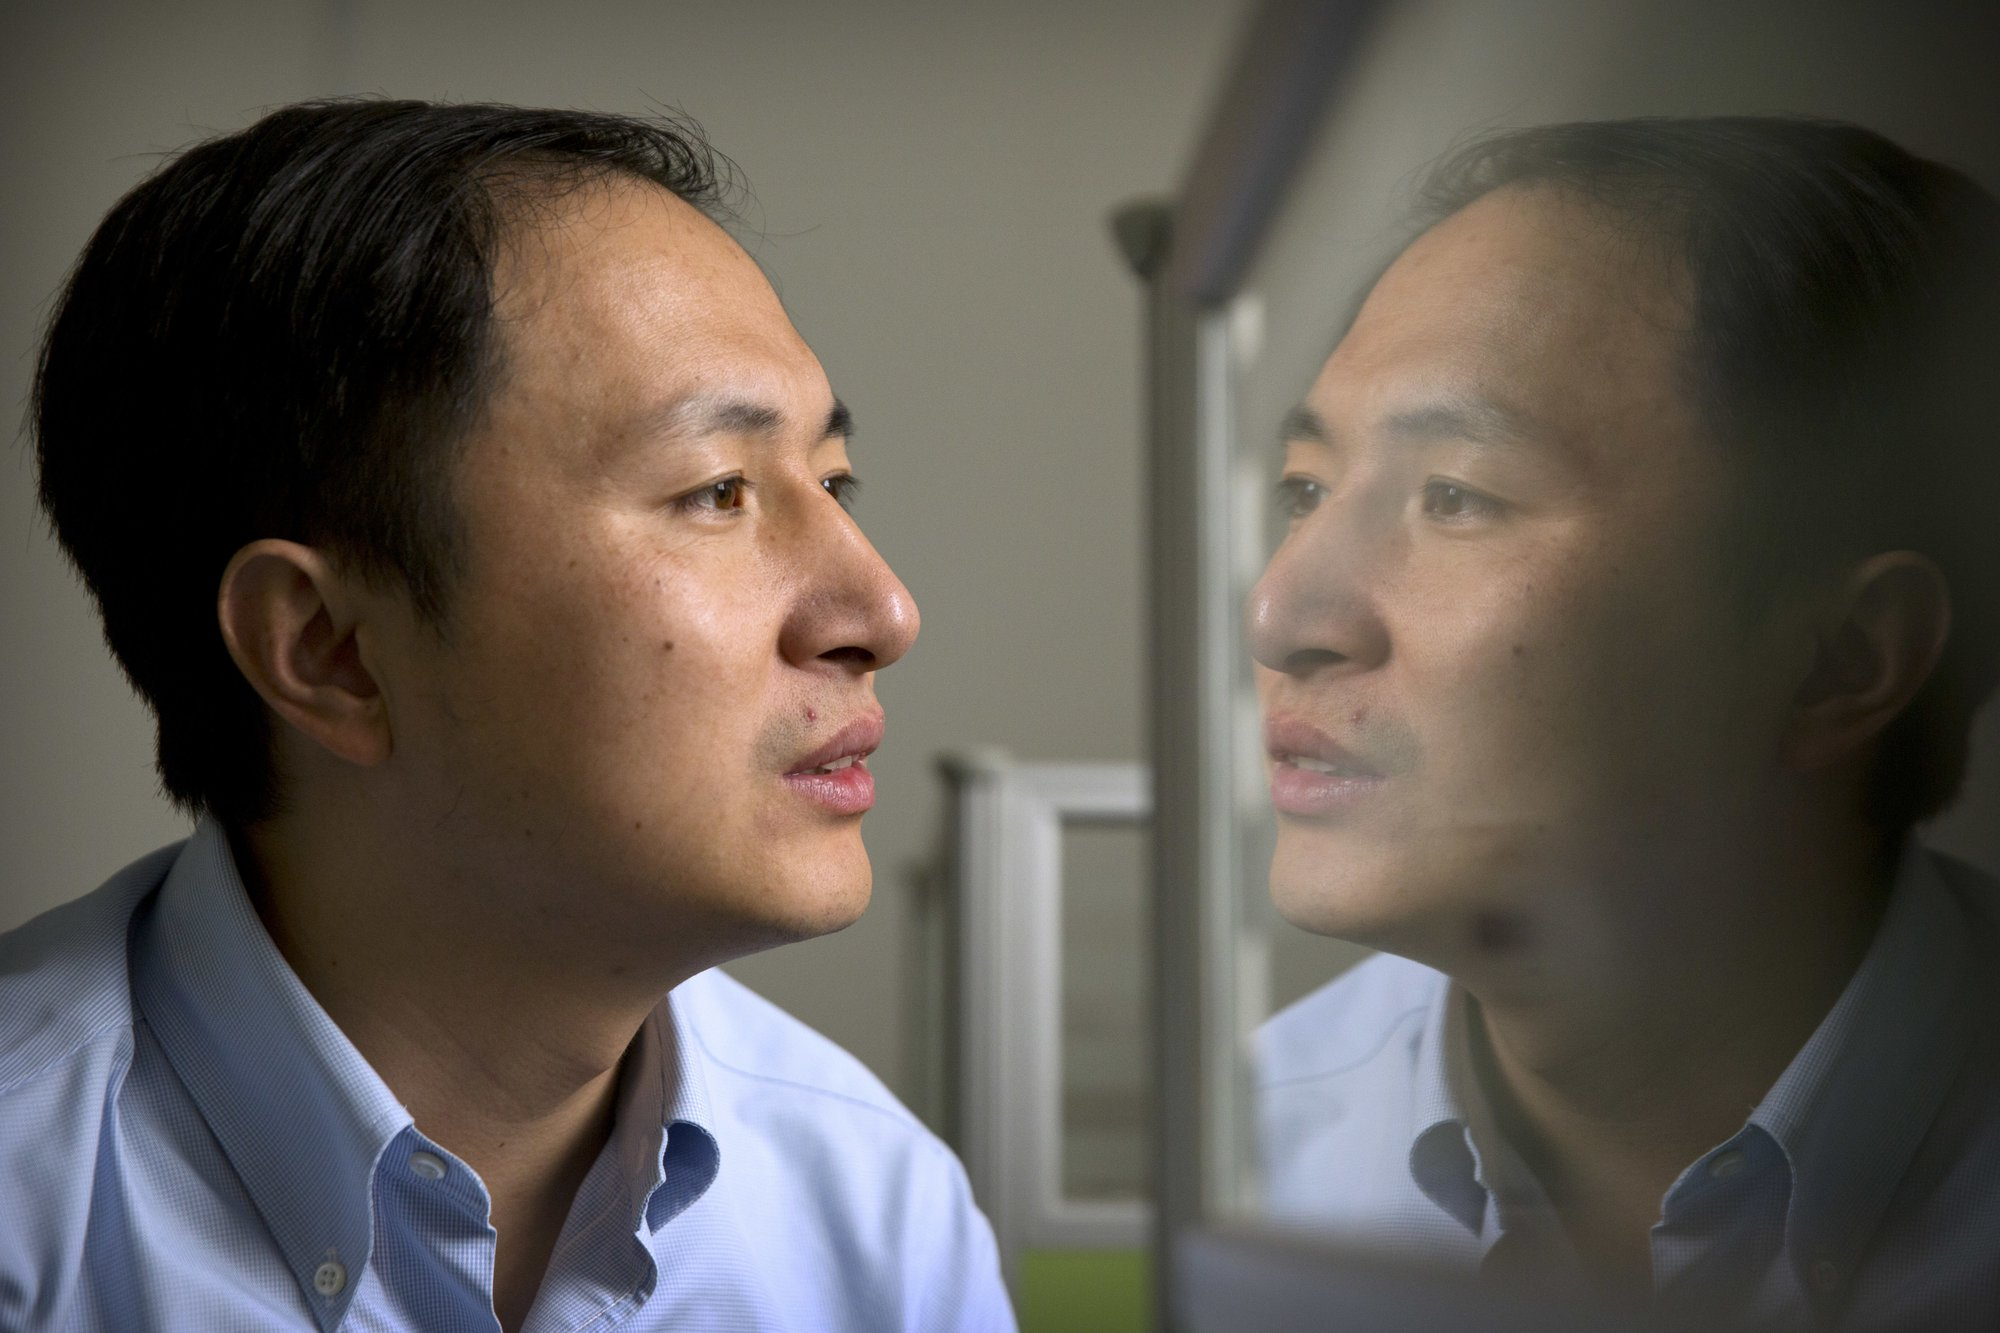 Chinese Dr working on Stem Cell